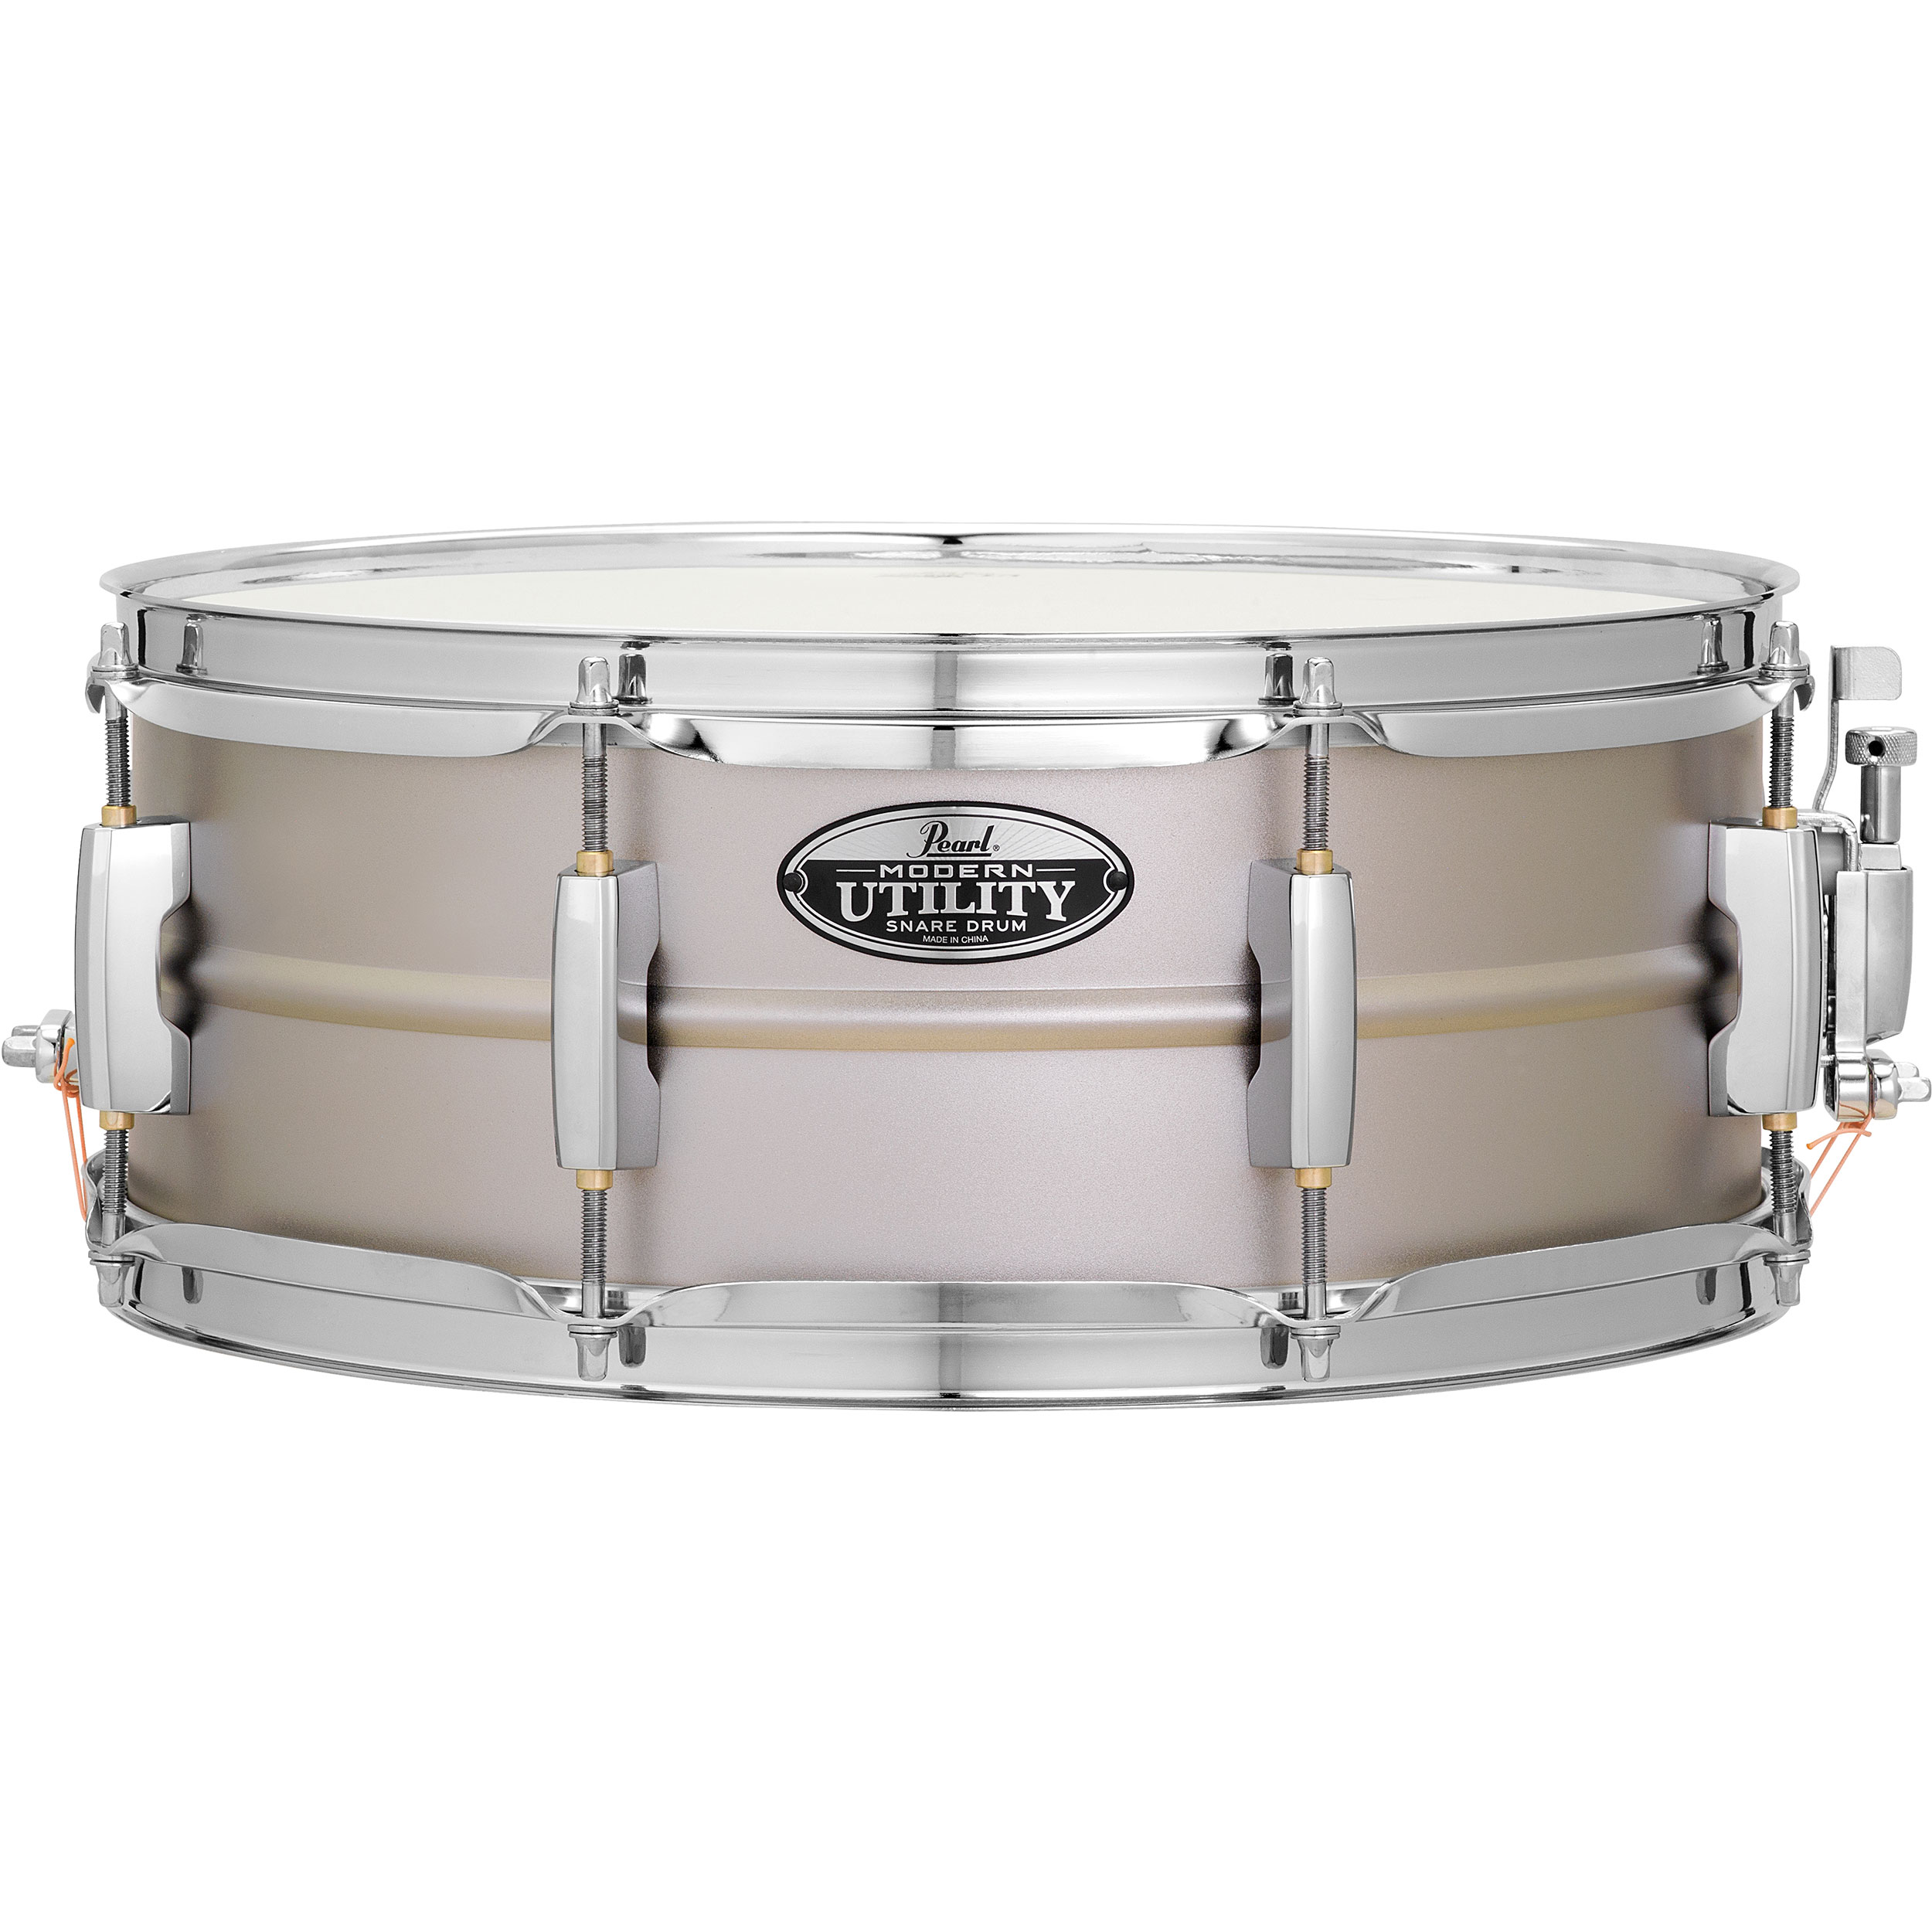 "Pearl 14"" x 5.5"" Modern Utility 1mm Beaded Steel Snare Drum"